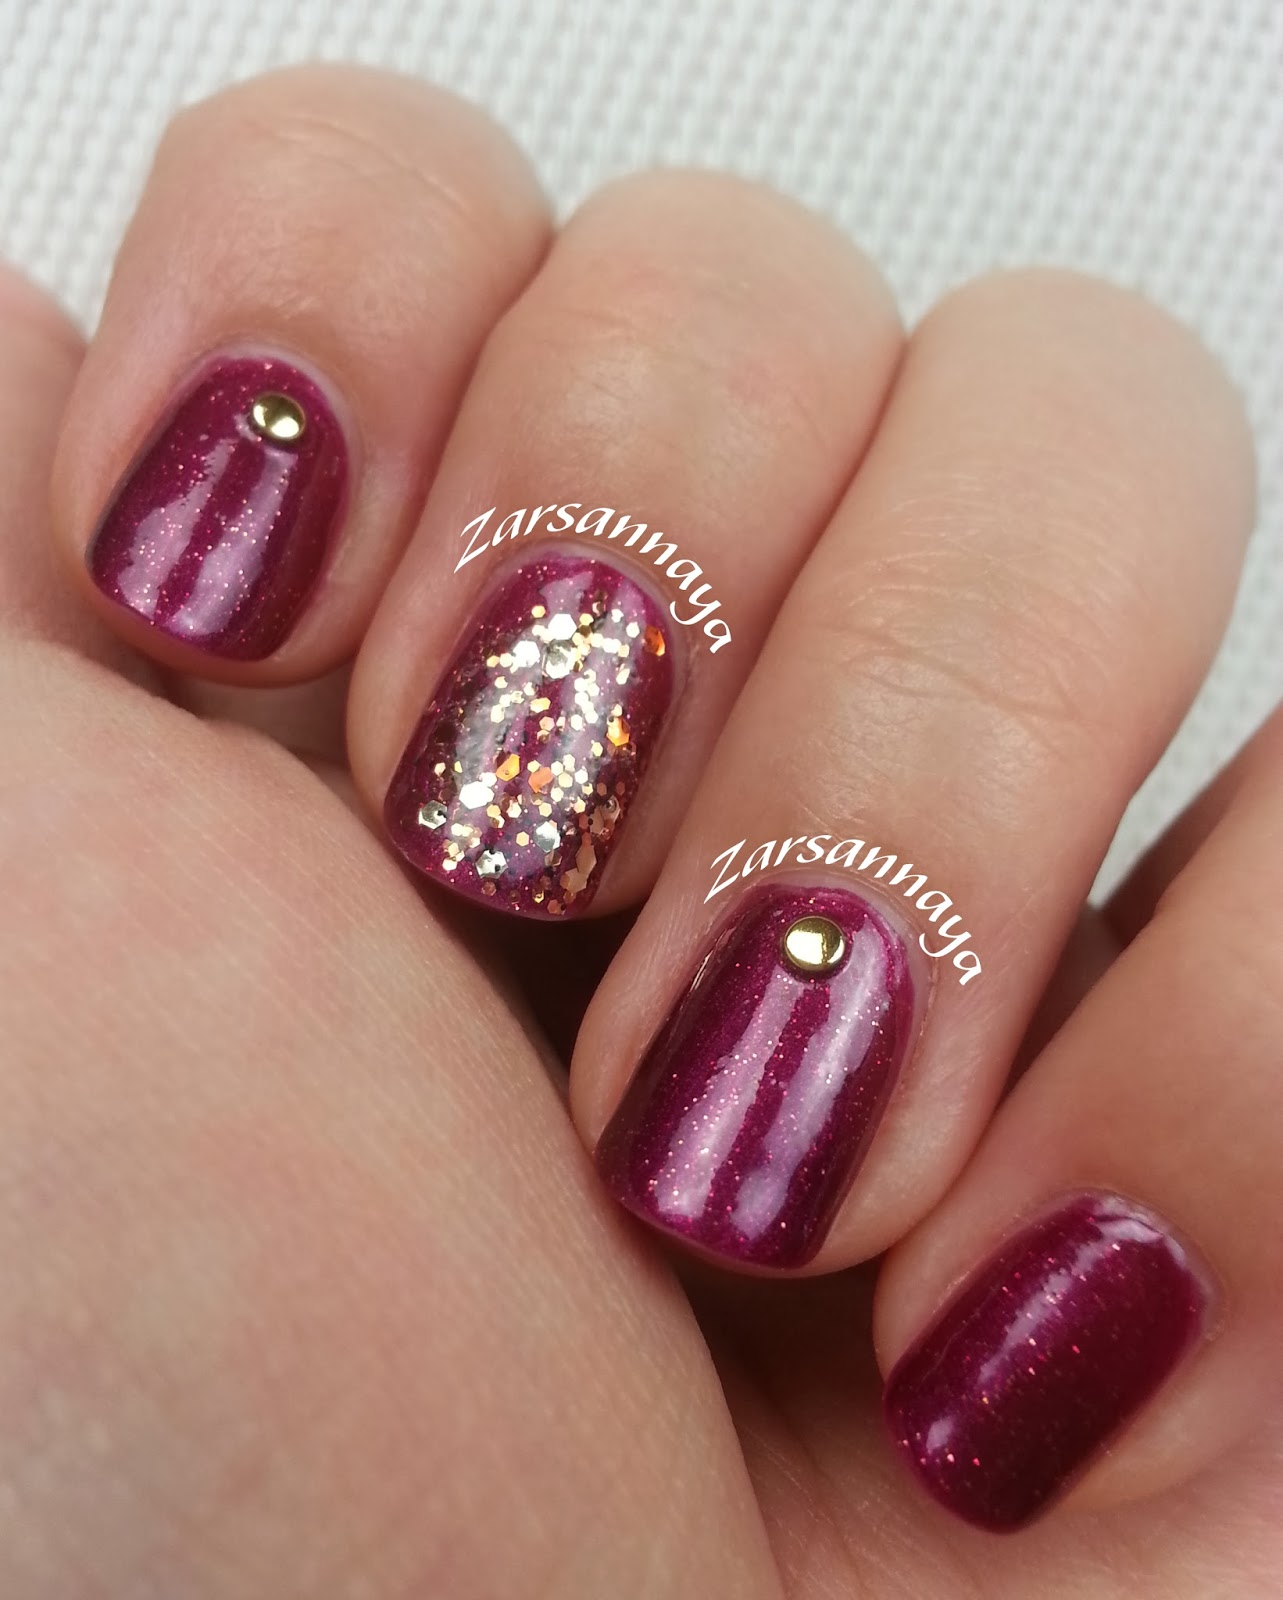 Nageldesign Weihnachten. Affordable Nageldesign Weihnachten With ...